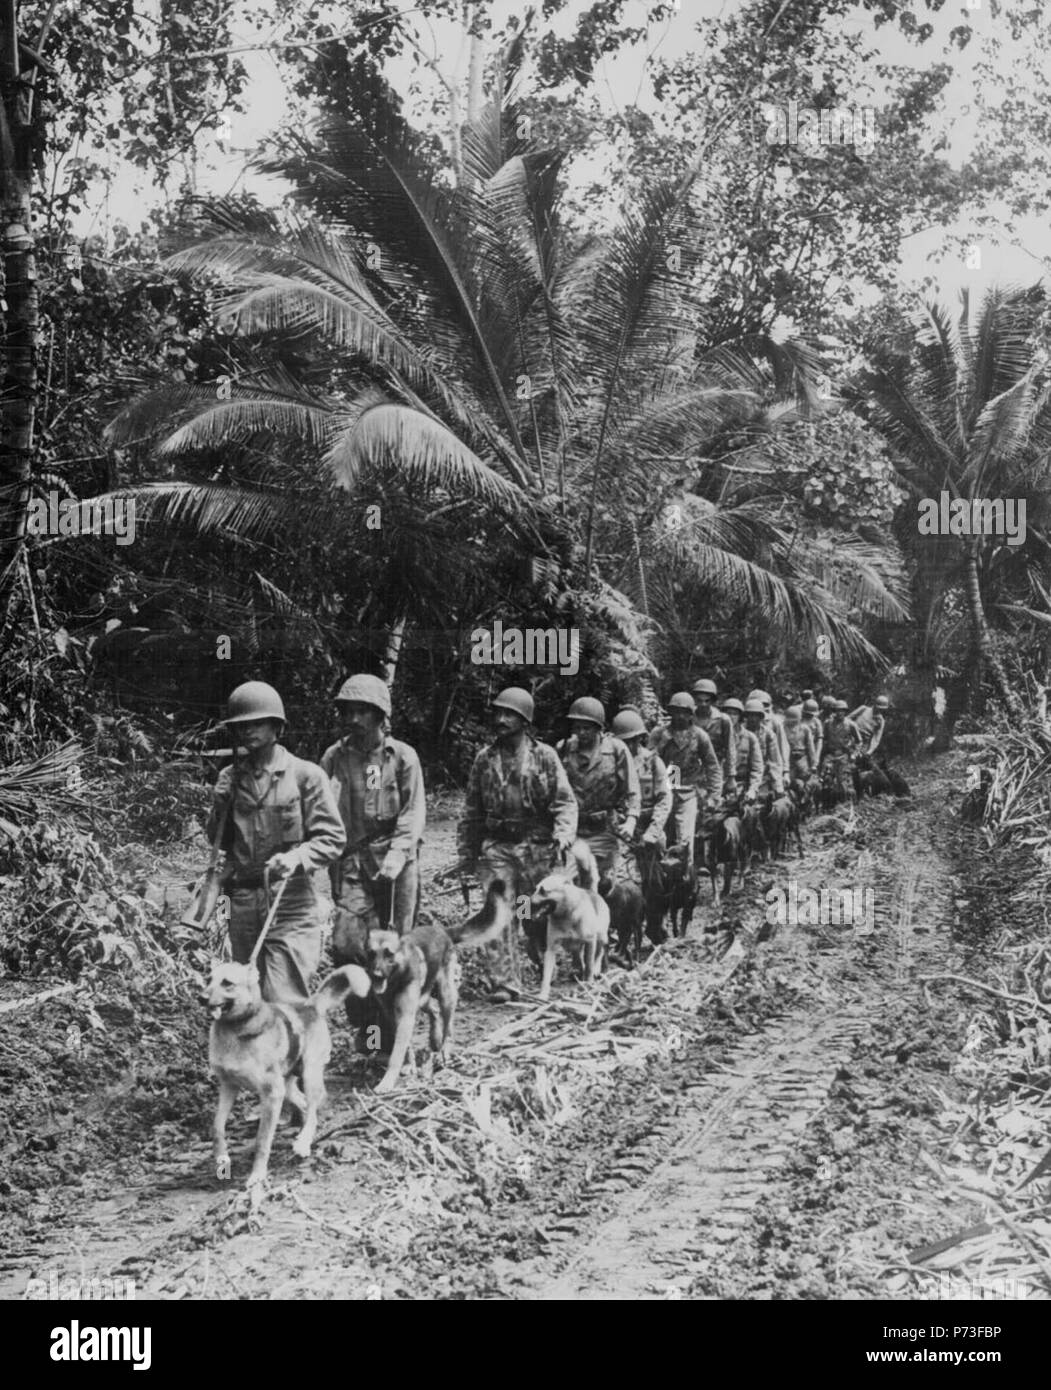 Marine Raiders take scouting and messenger dogs to the frontlines on Bougainville, late 1943 - Stock Image